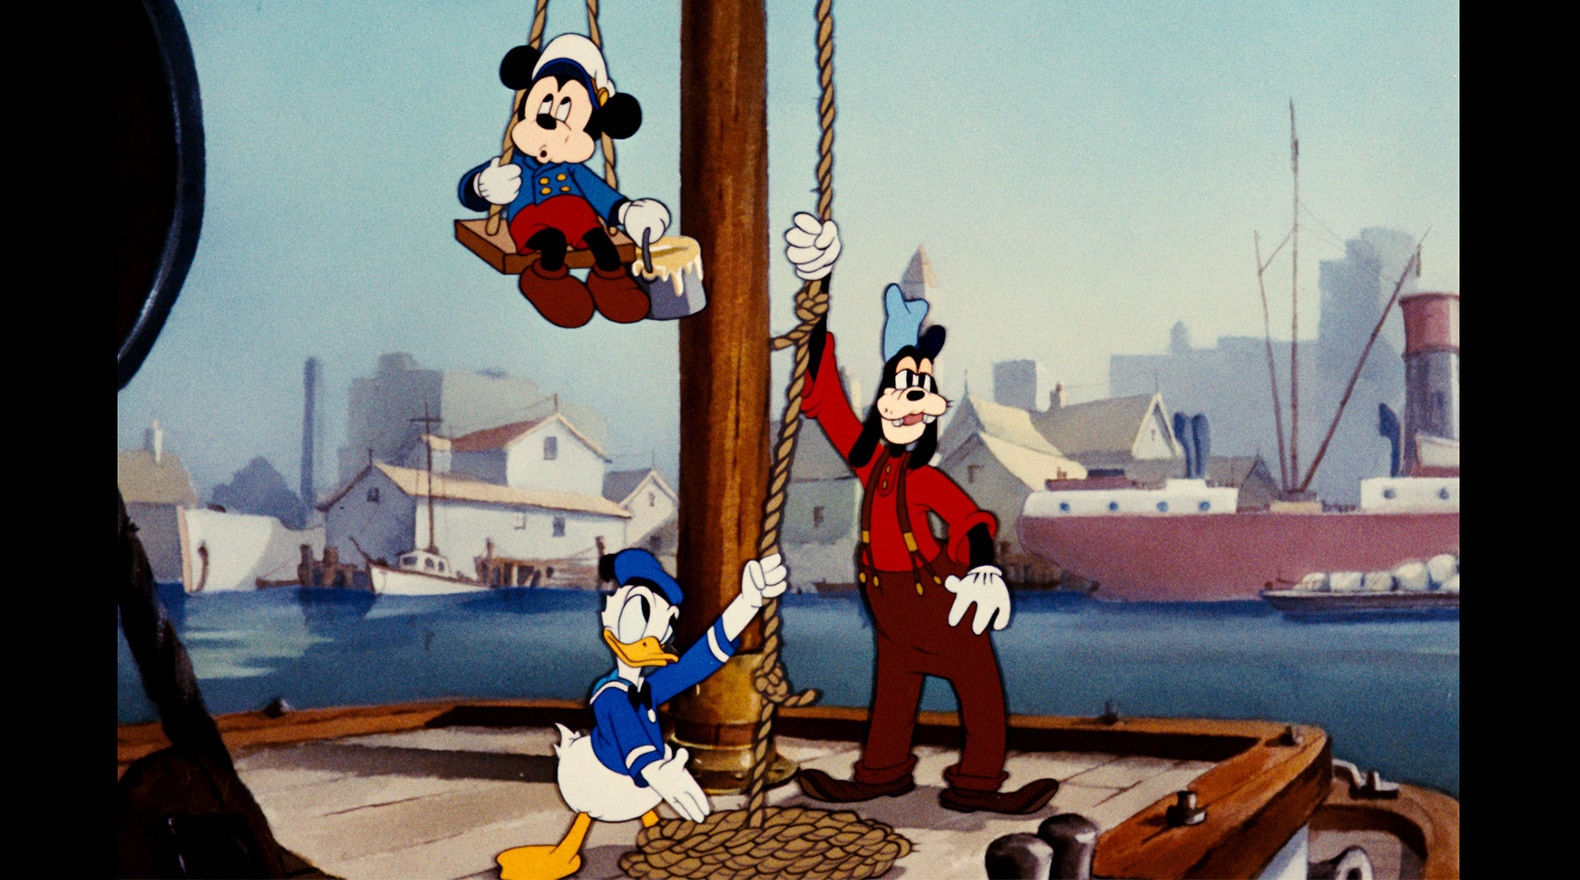 Mickey and his pals hang on the dock.